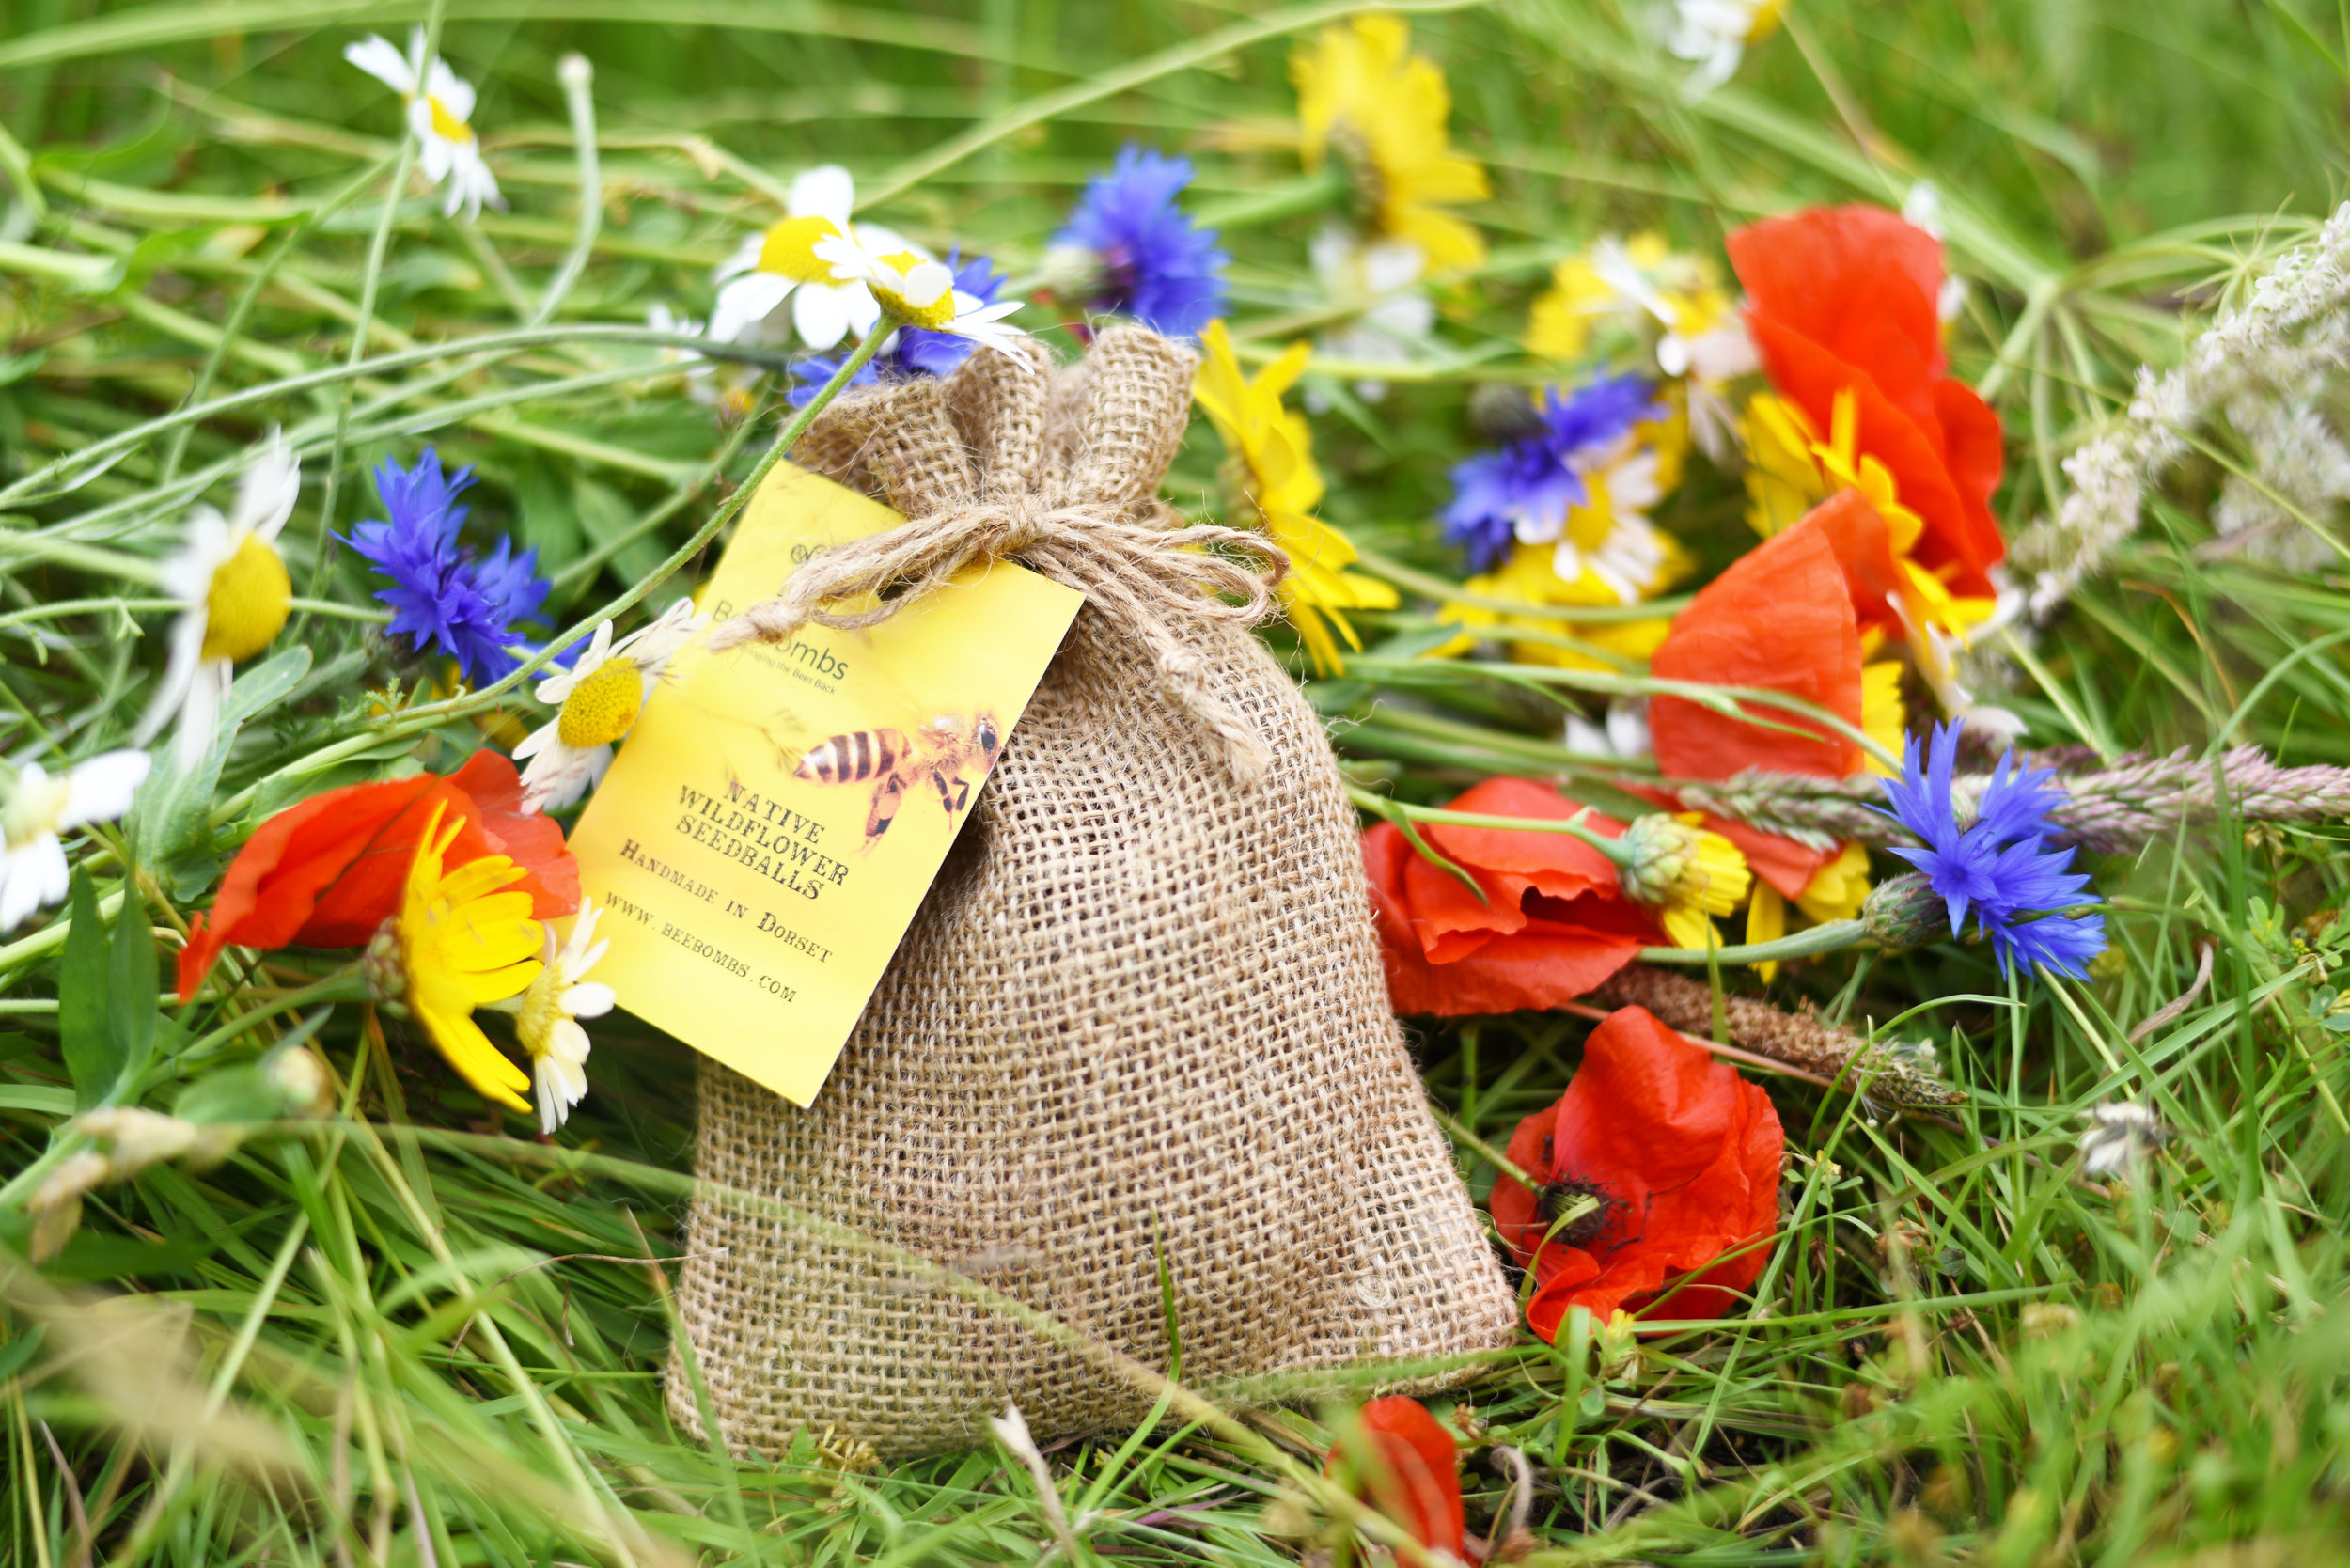 Perfect year round gifts. Native Wildflower Seedballs to help #bringthebeesback